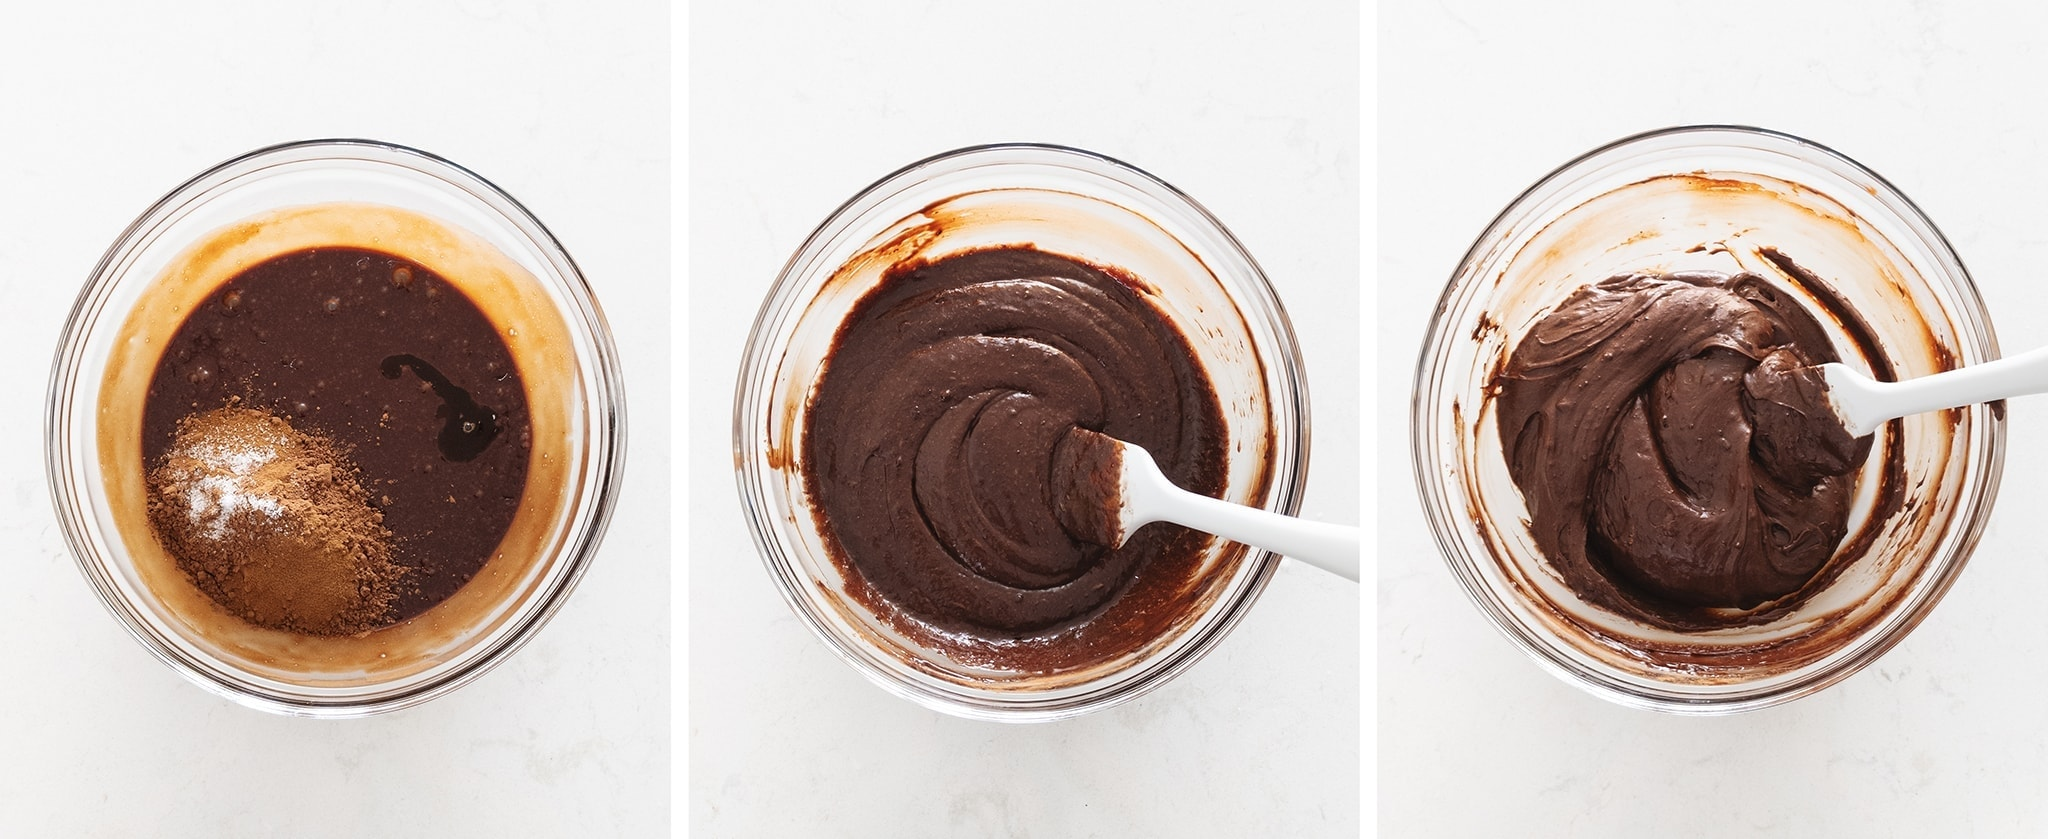 Mixing chocolate cake batter in a bowl